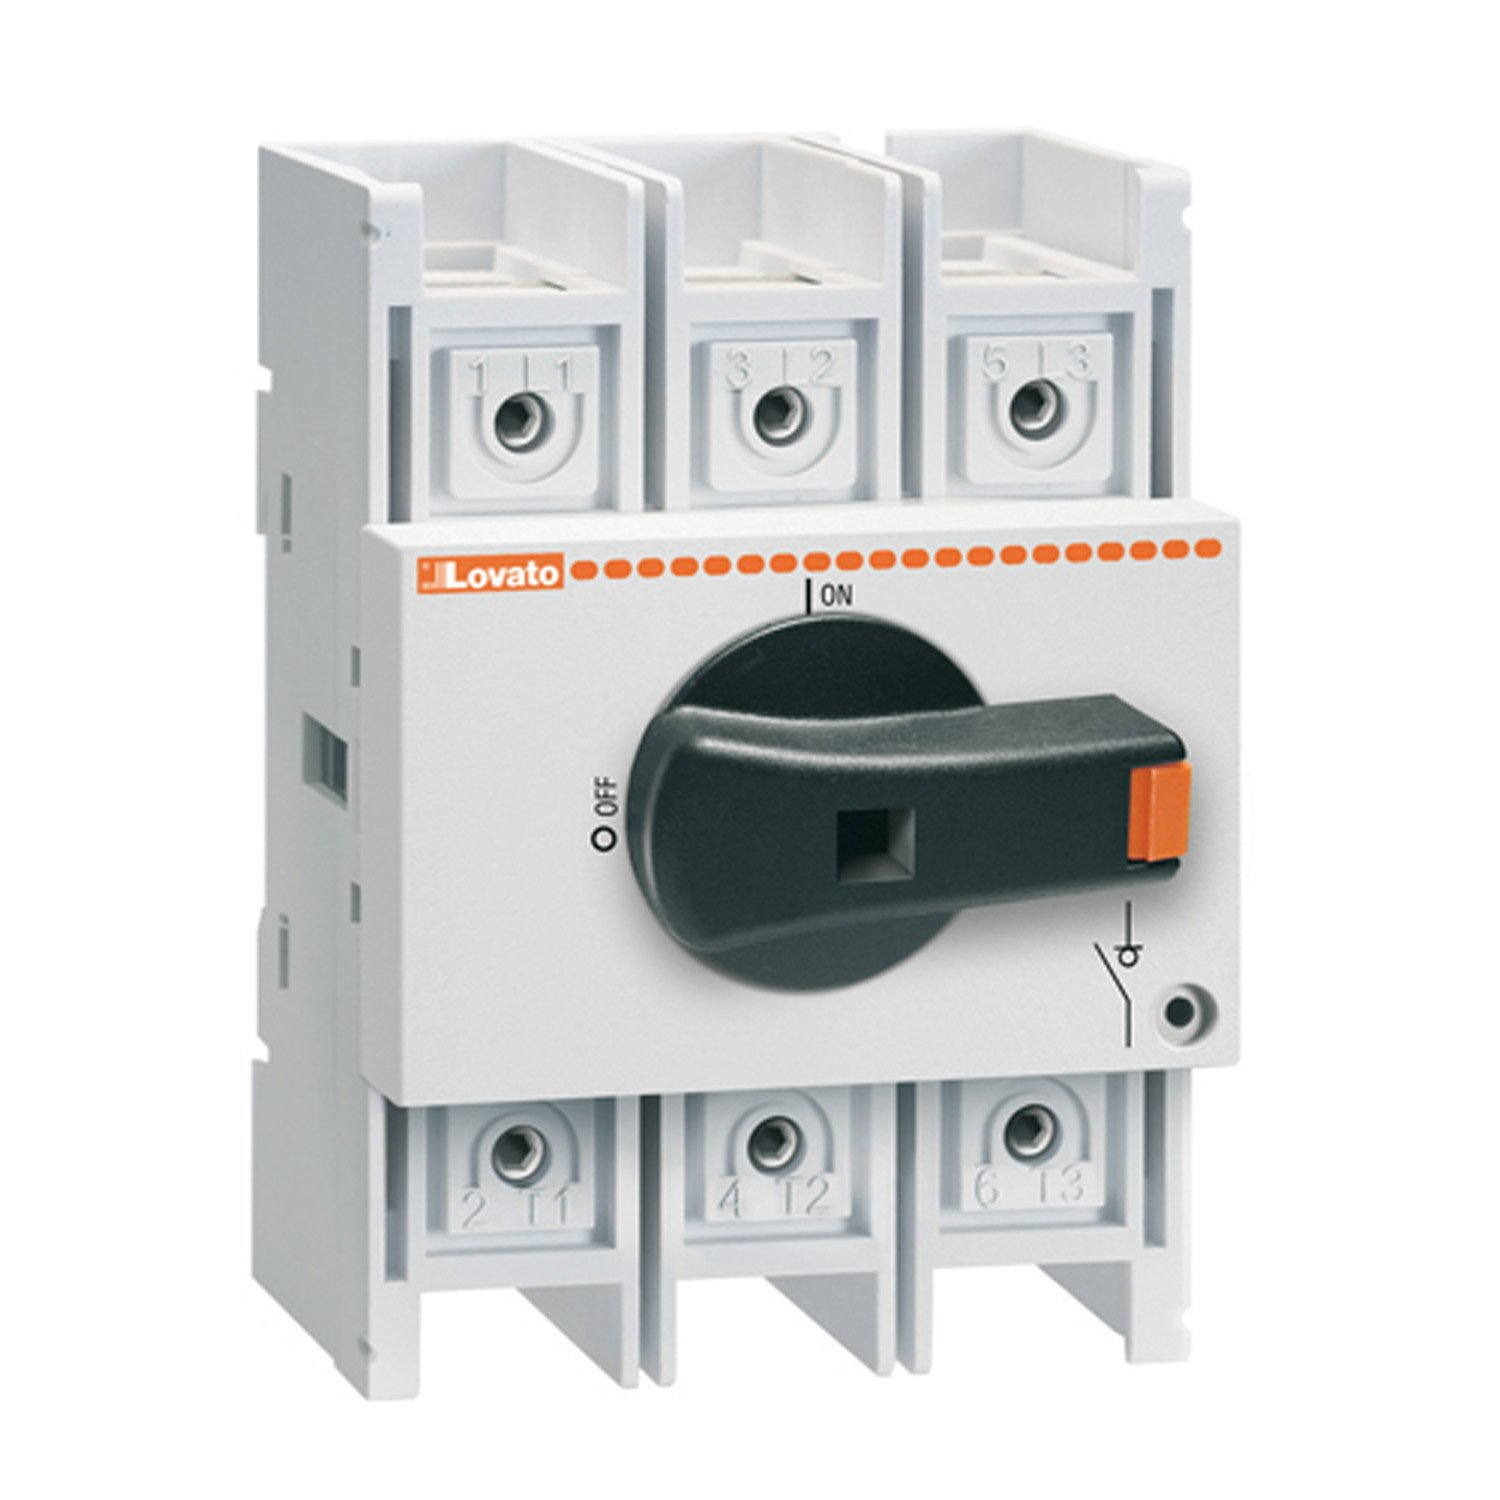 UL Listed 16 Amp ASI GA016A Disconnect Switch Panel Mount 3 Pole